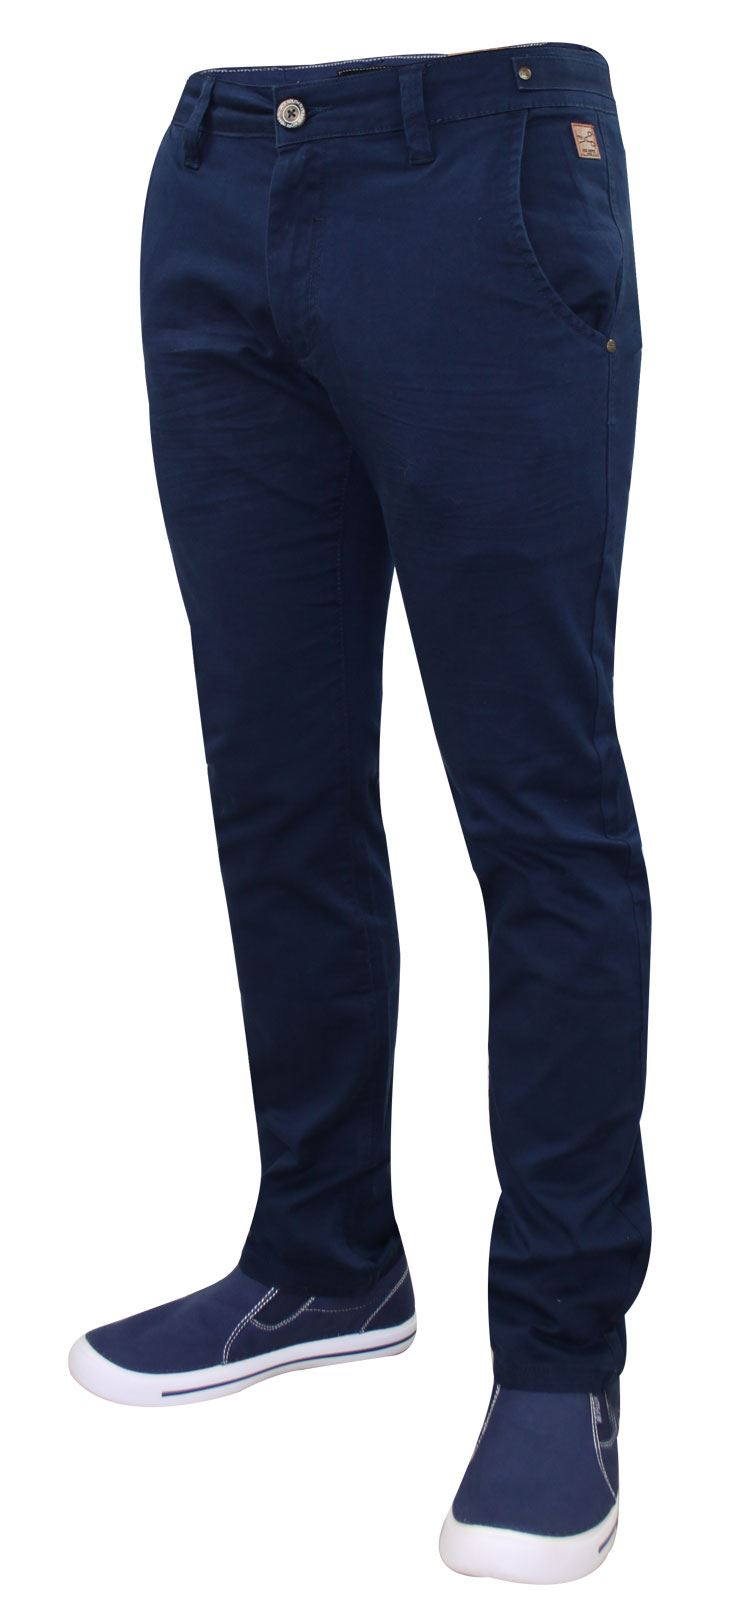 Men-Chinos-Trousers-Regular-Fit-Stretch-Cotton-Jeans-Pants-All-Waist-Sizes thumbnail 16